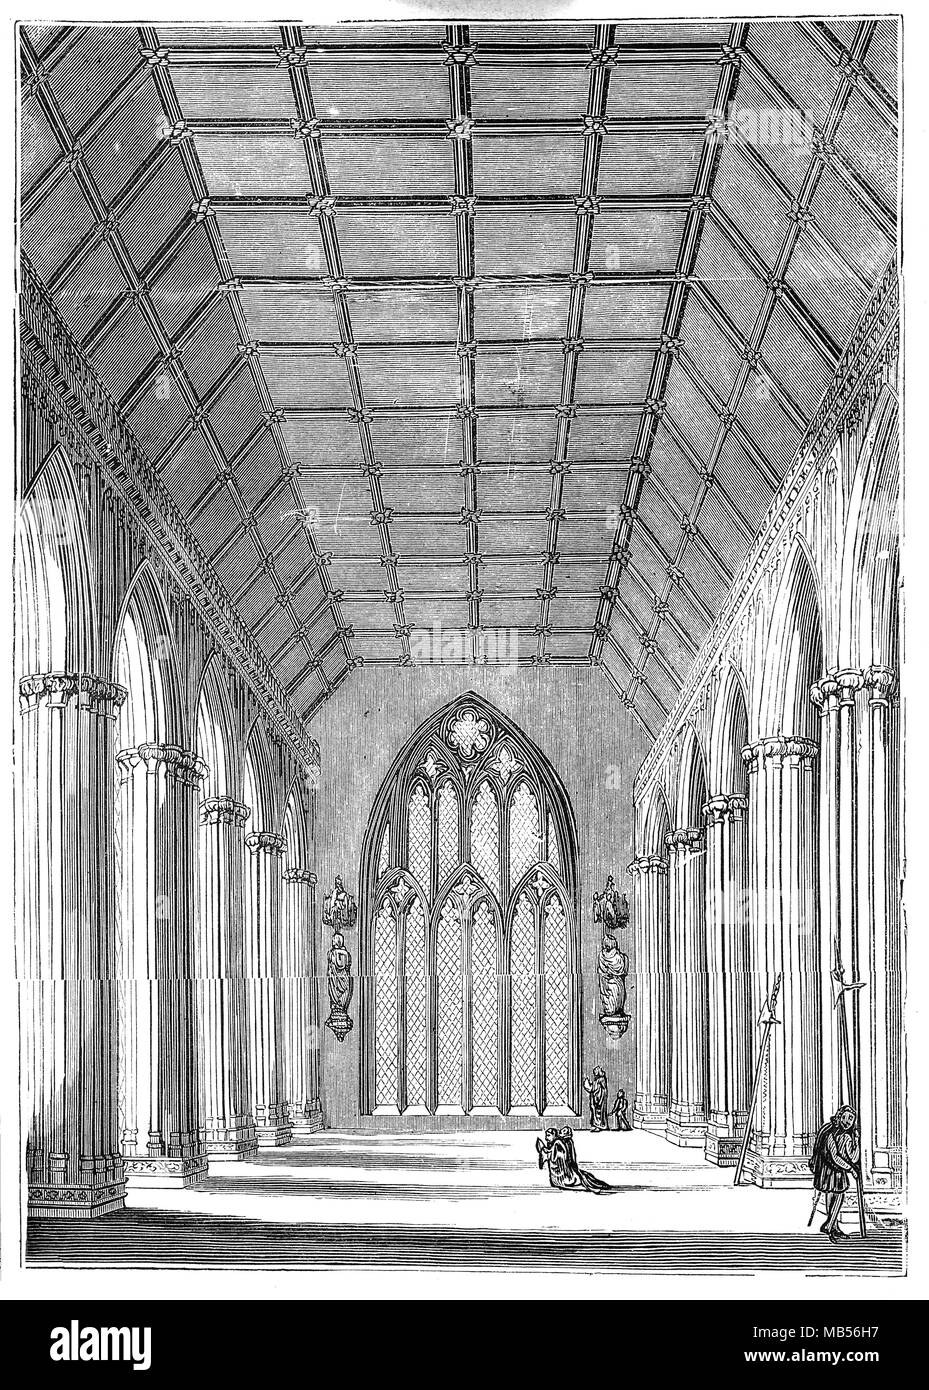 The restored St Stephen's Chapel Ruins,  after the fire that destroyed the Palace of Westminster on 16 October 1834. Scattered throughout the Chapel are pieces of masonry from the destroyed House of Commons (formerly St Stephen's Chapel) above. - Stock Image